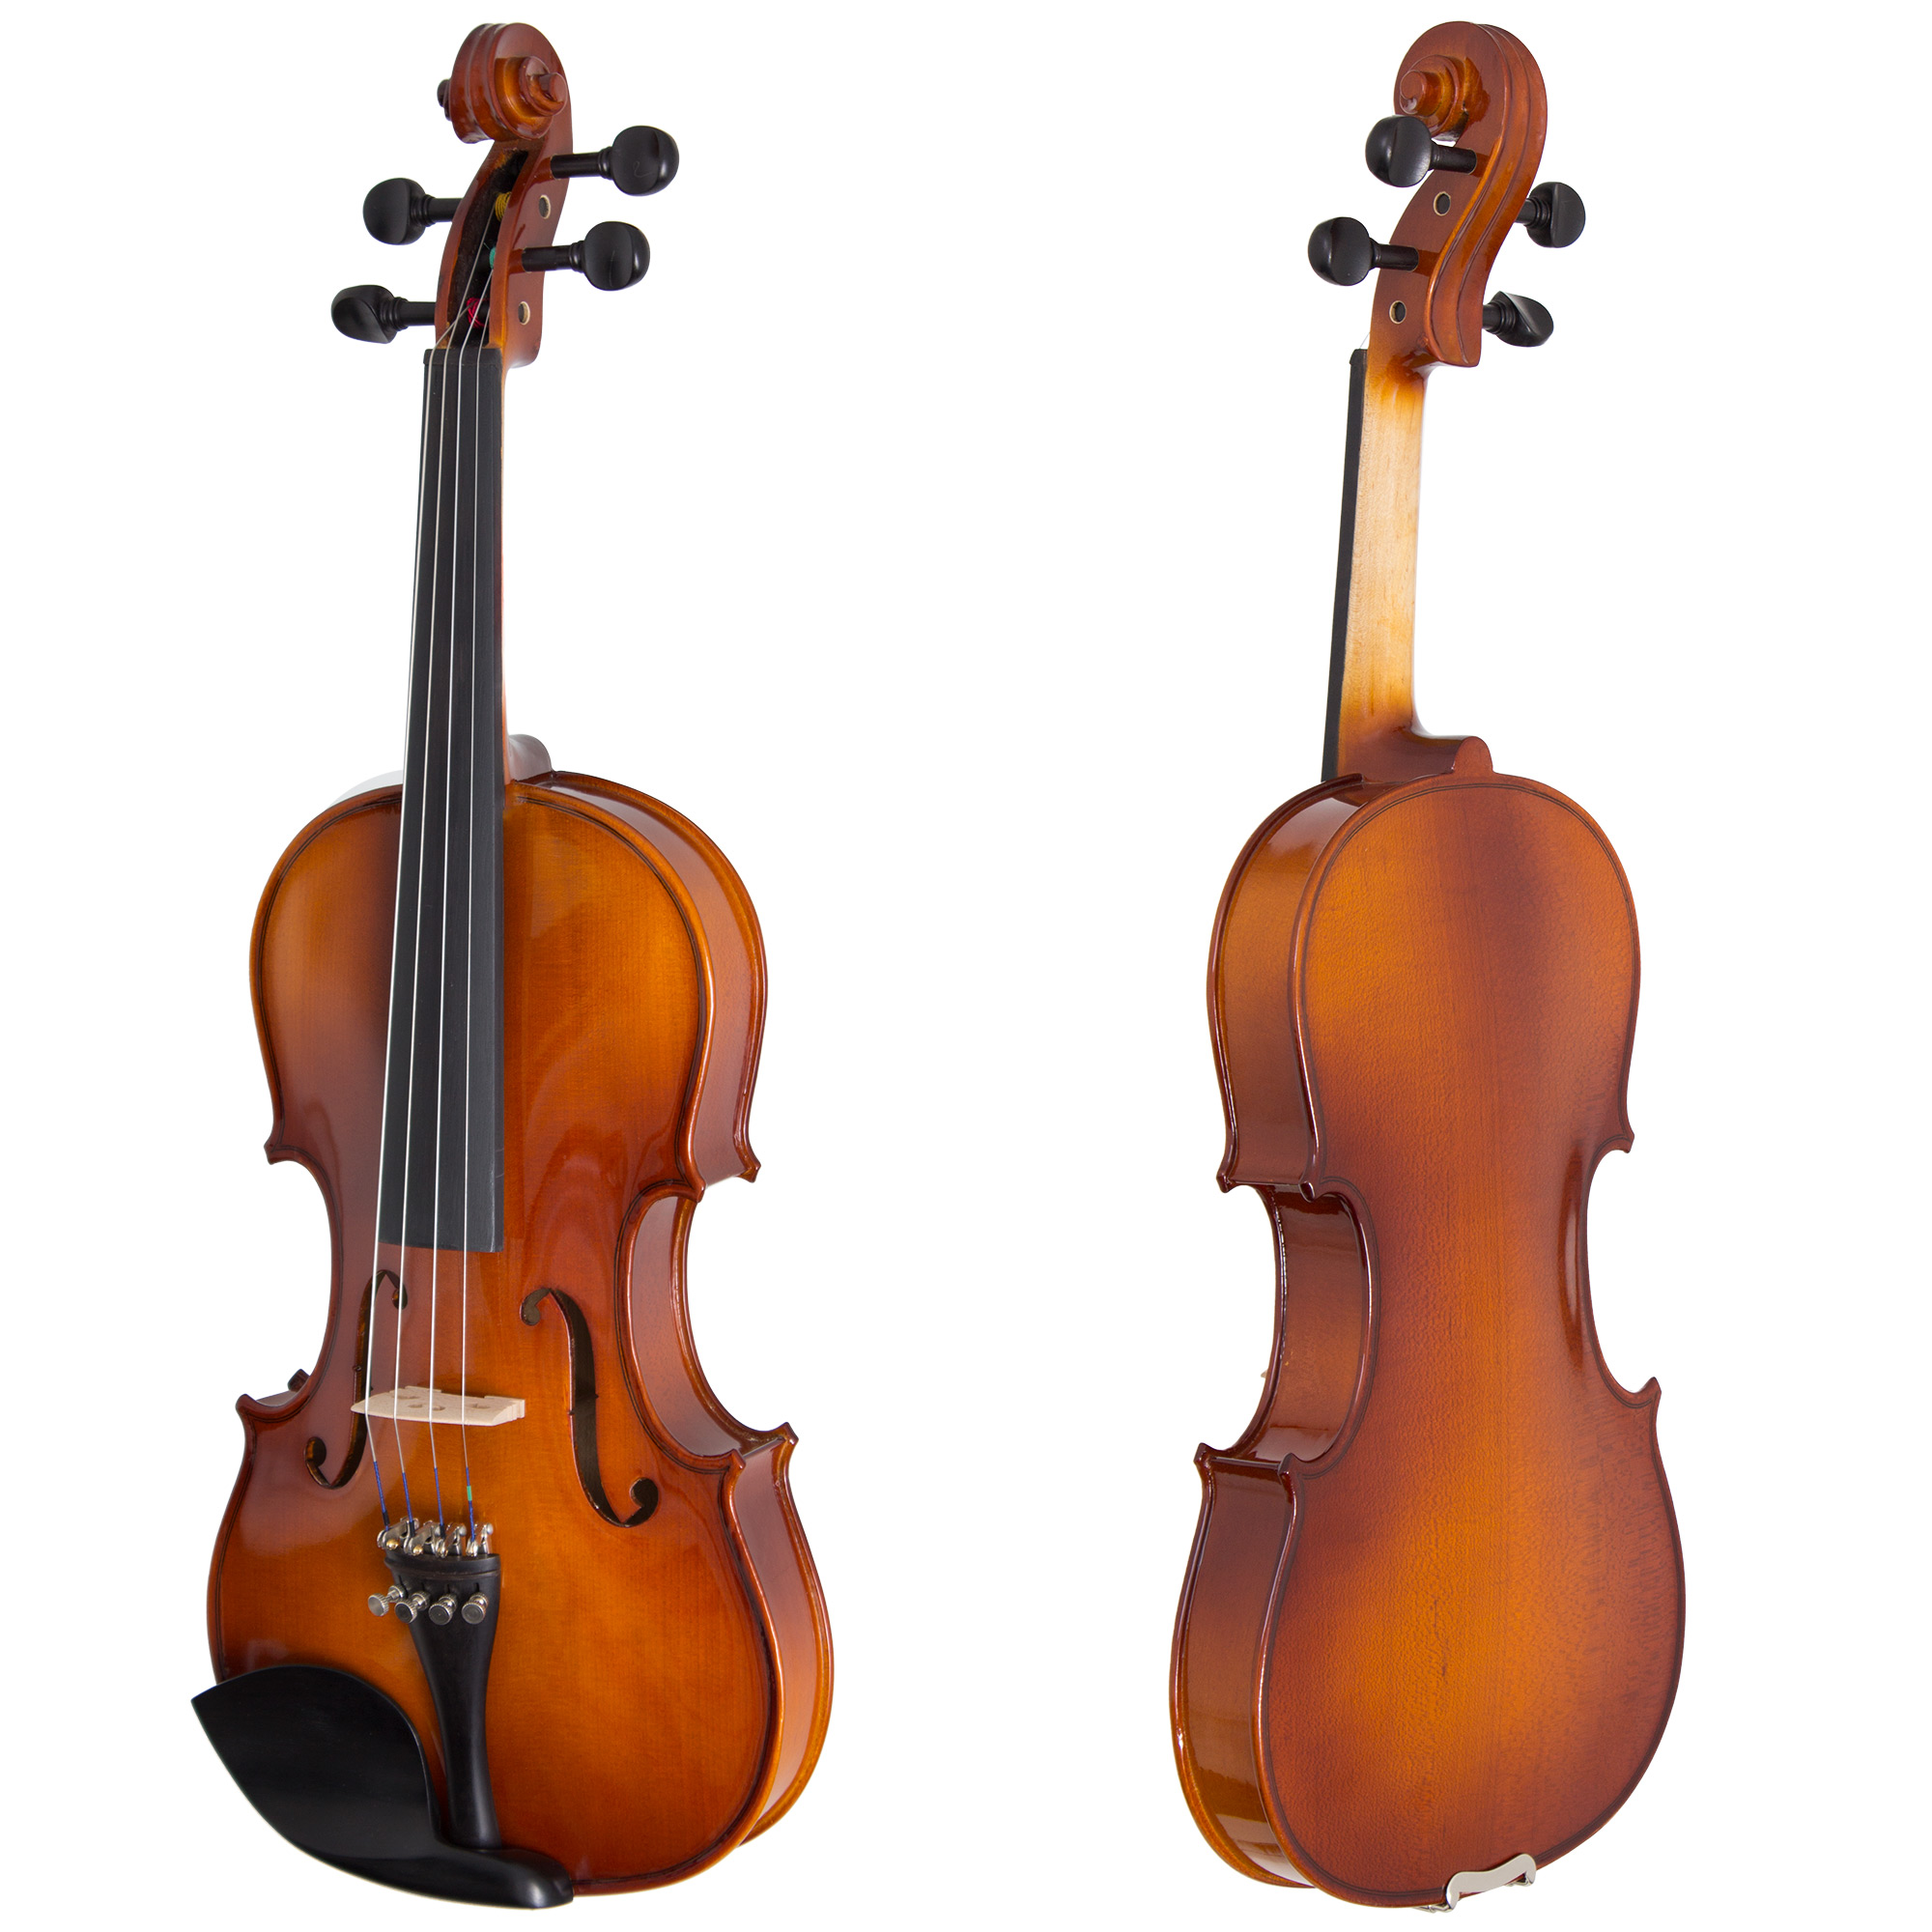 Cecilio full size 44 cvn 300 ebony fitted solid wood violin wd cecilio full size 44 cvn 300 ebony fitted solid wood violin wdaddario prelude strings lesson book shoulder rest and more walmart ccuart Image collections